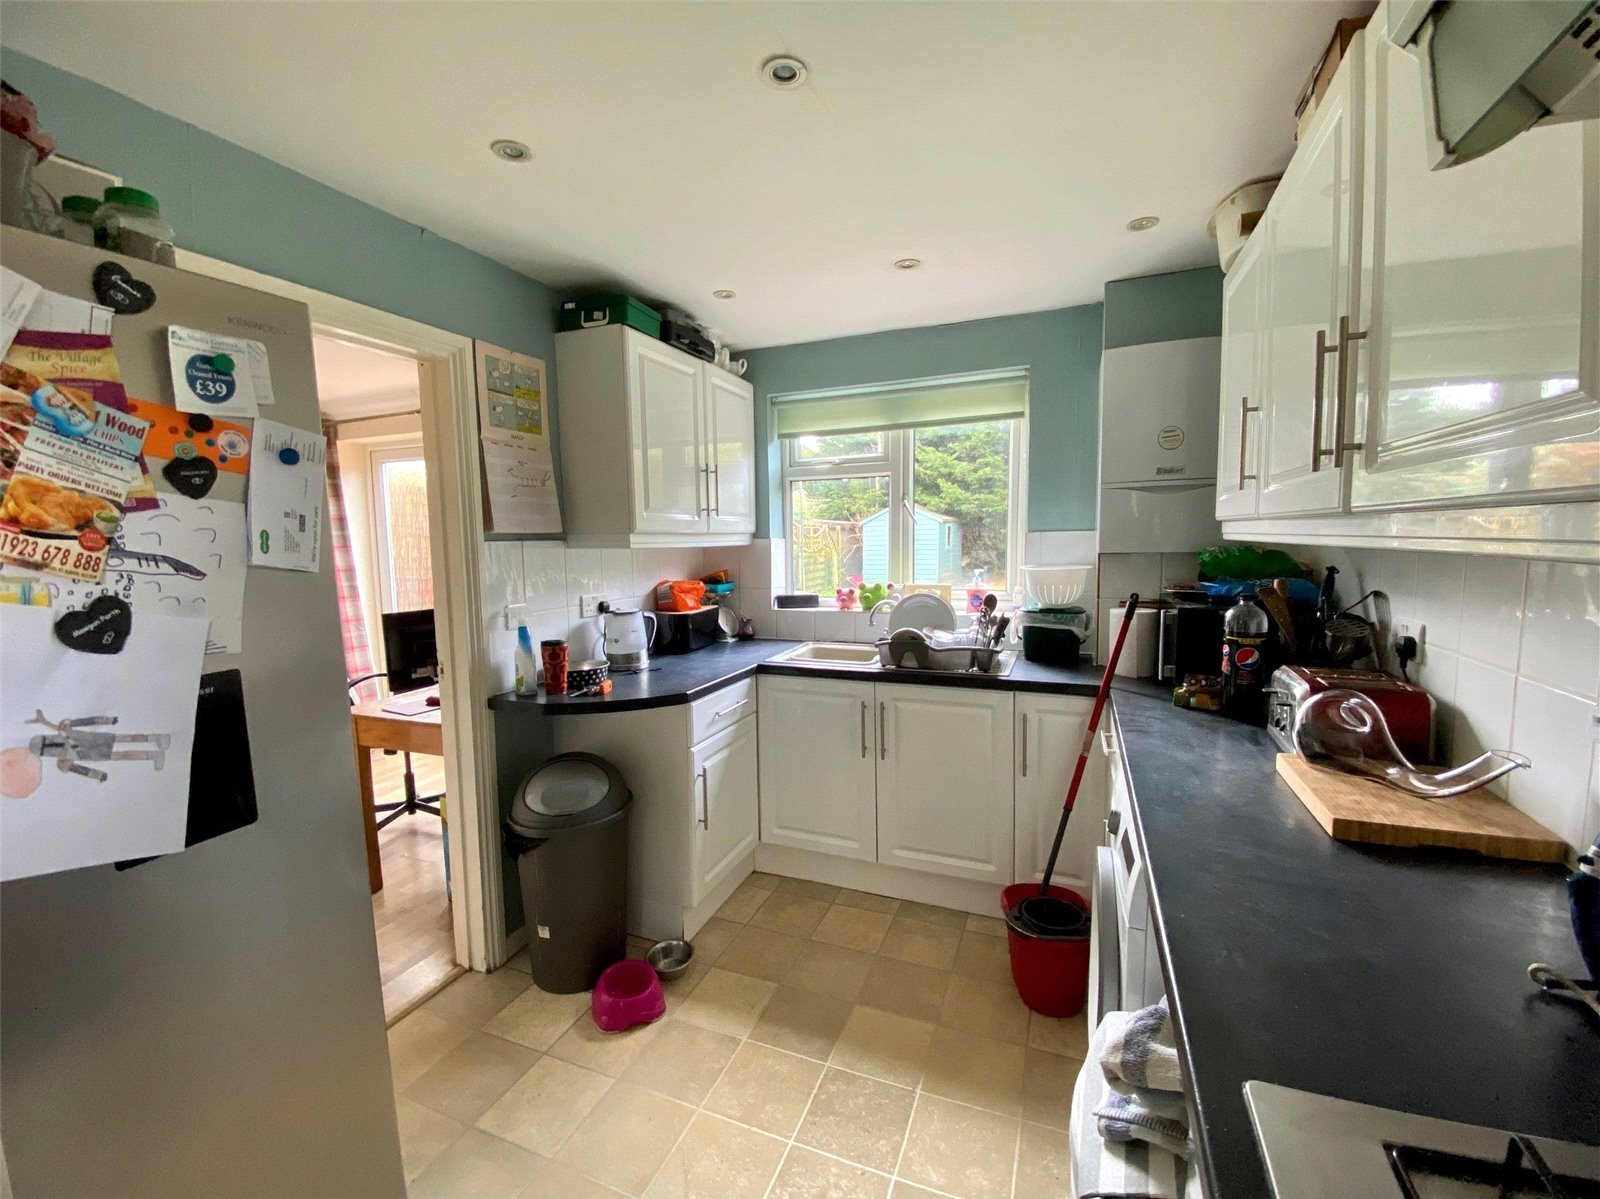 3 bed house to rent in Bricket Wood, AL2 3NB  - Property Image 9